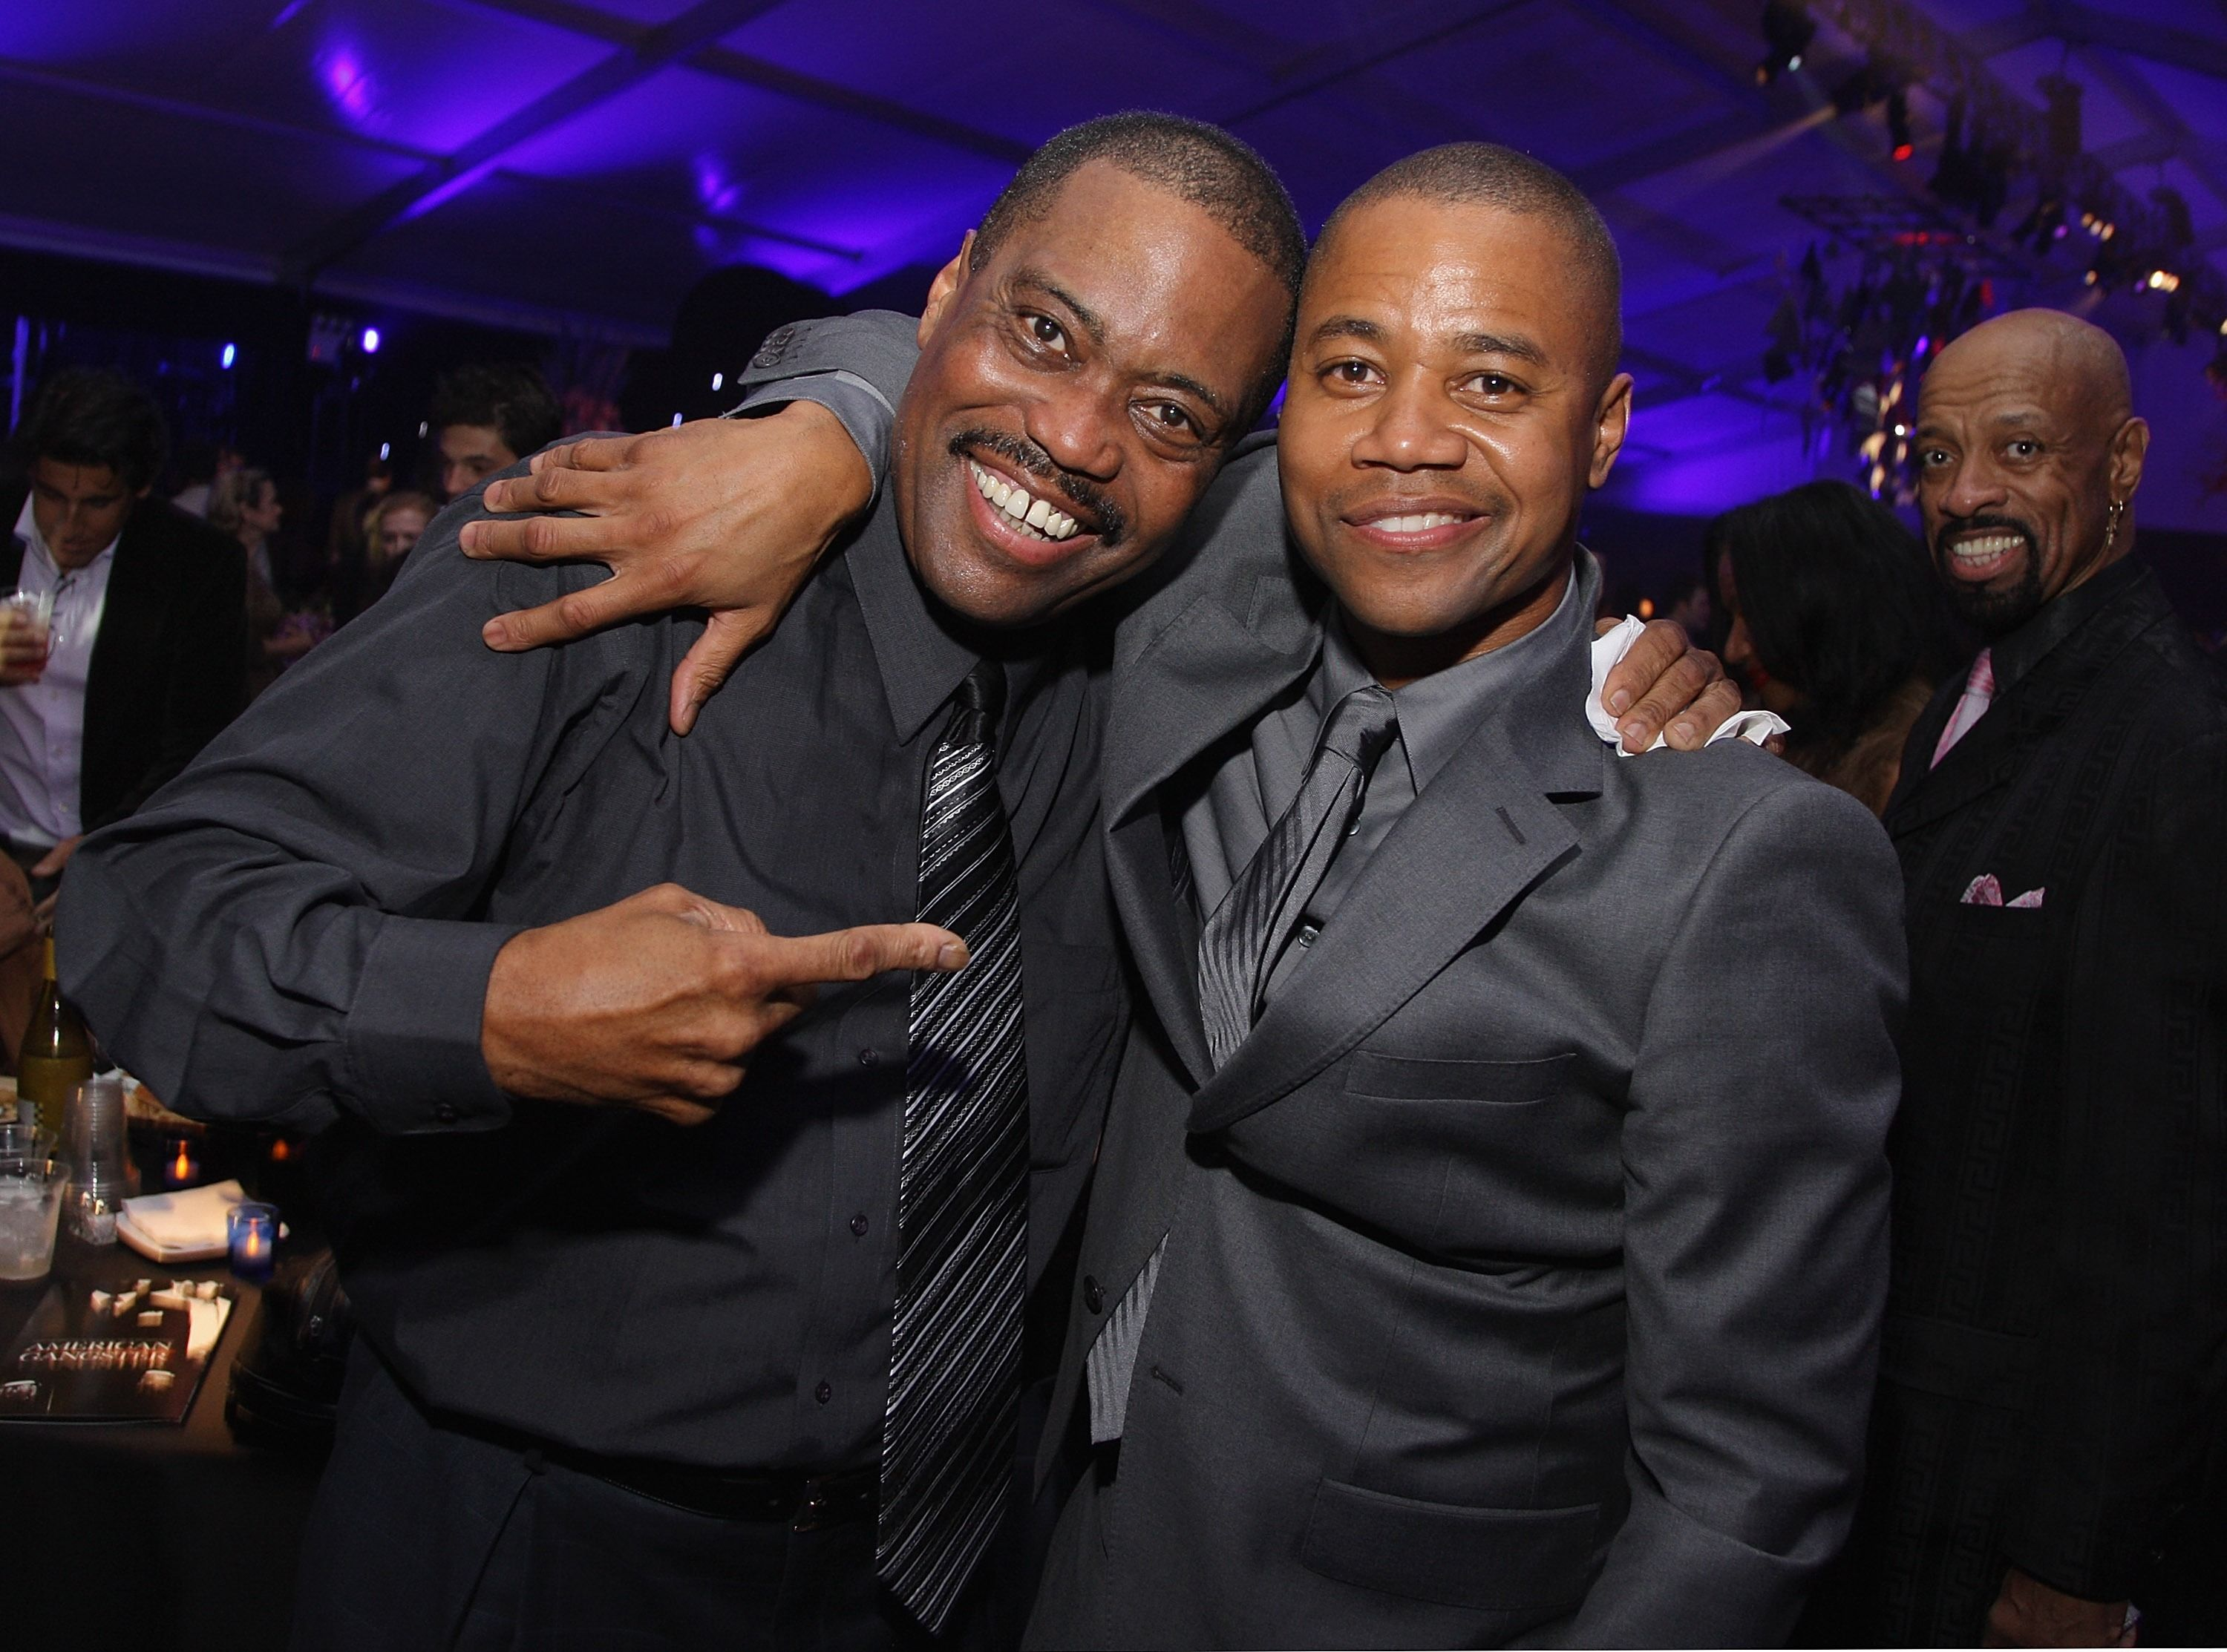 Cuba Gooding Sr. and actor Cuba Gooding Jr.attend the after-party of the world premiere of American Gangster at the Apollo Theater on October 19, 2007 in New York City | Photo: Getty Images